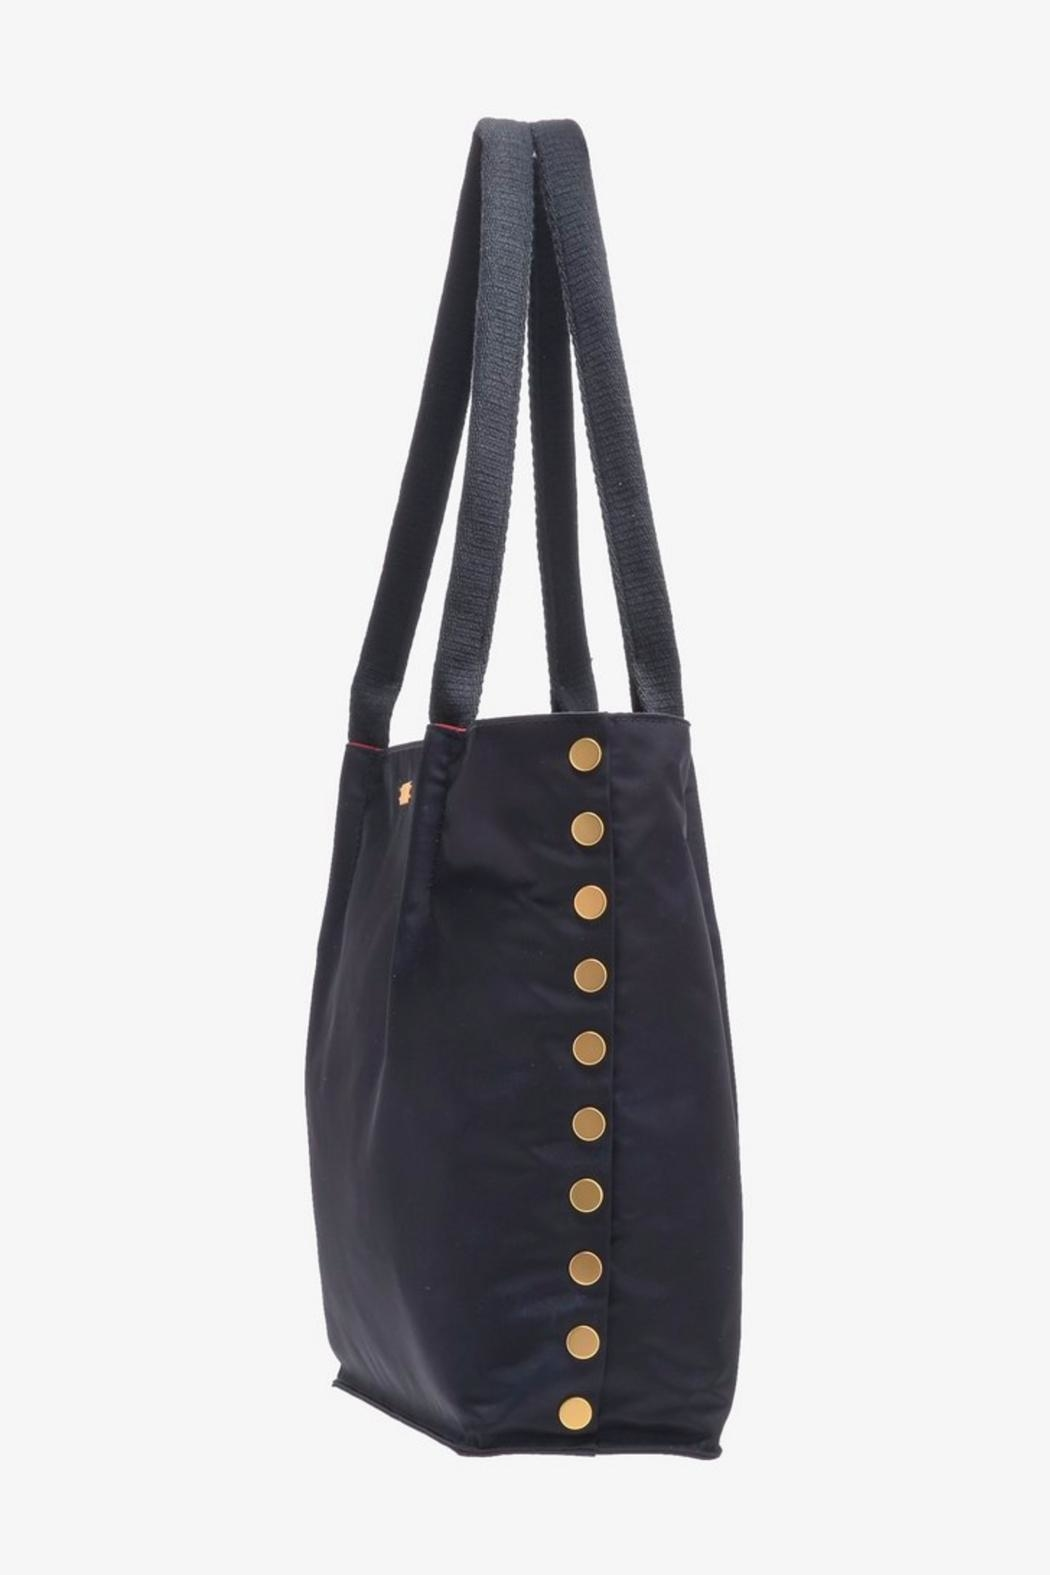 Hammitt Los Angeles Oliver Zippered Tote - Side Cropped Image